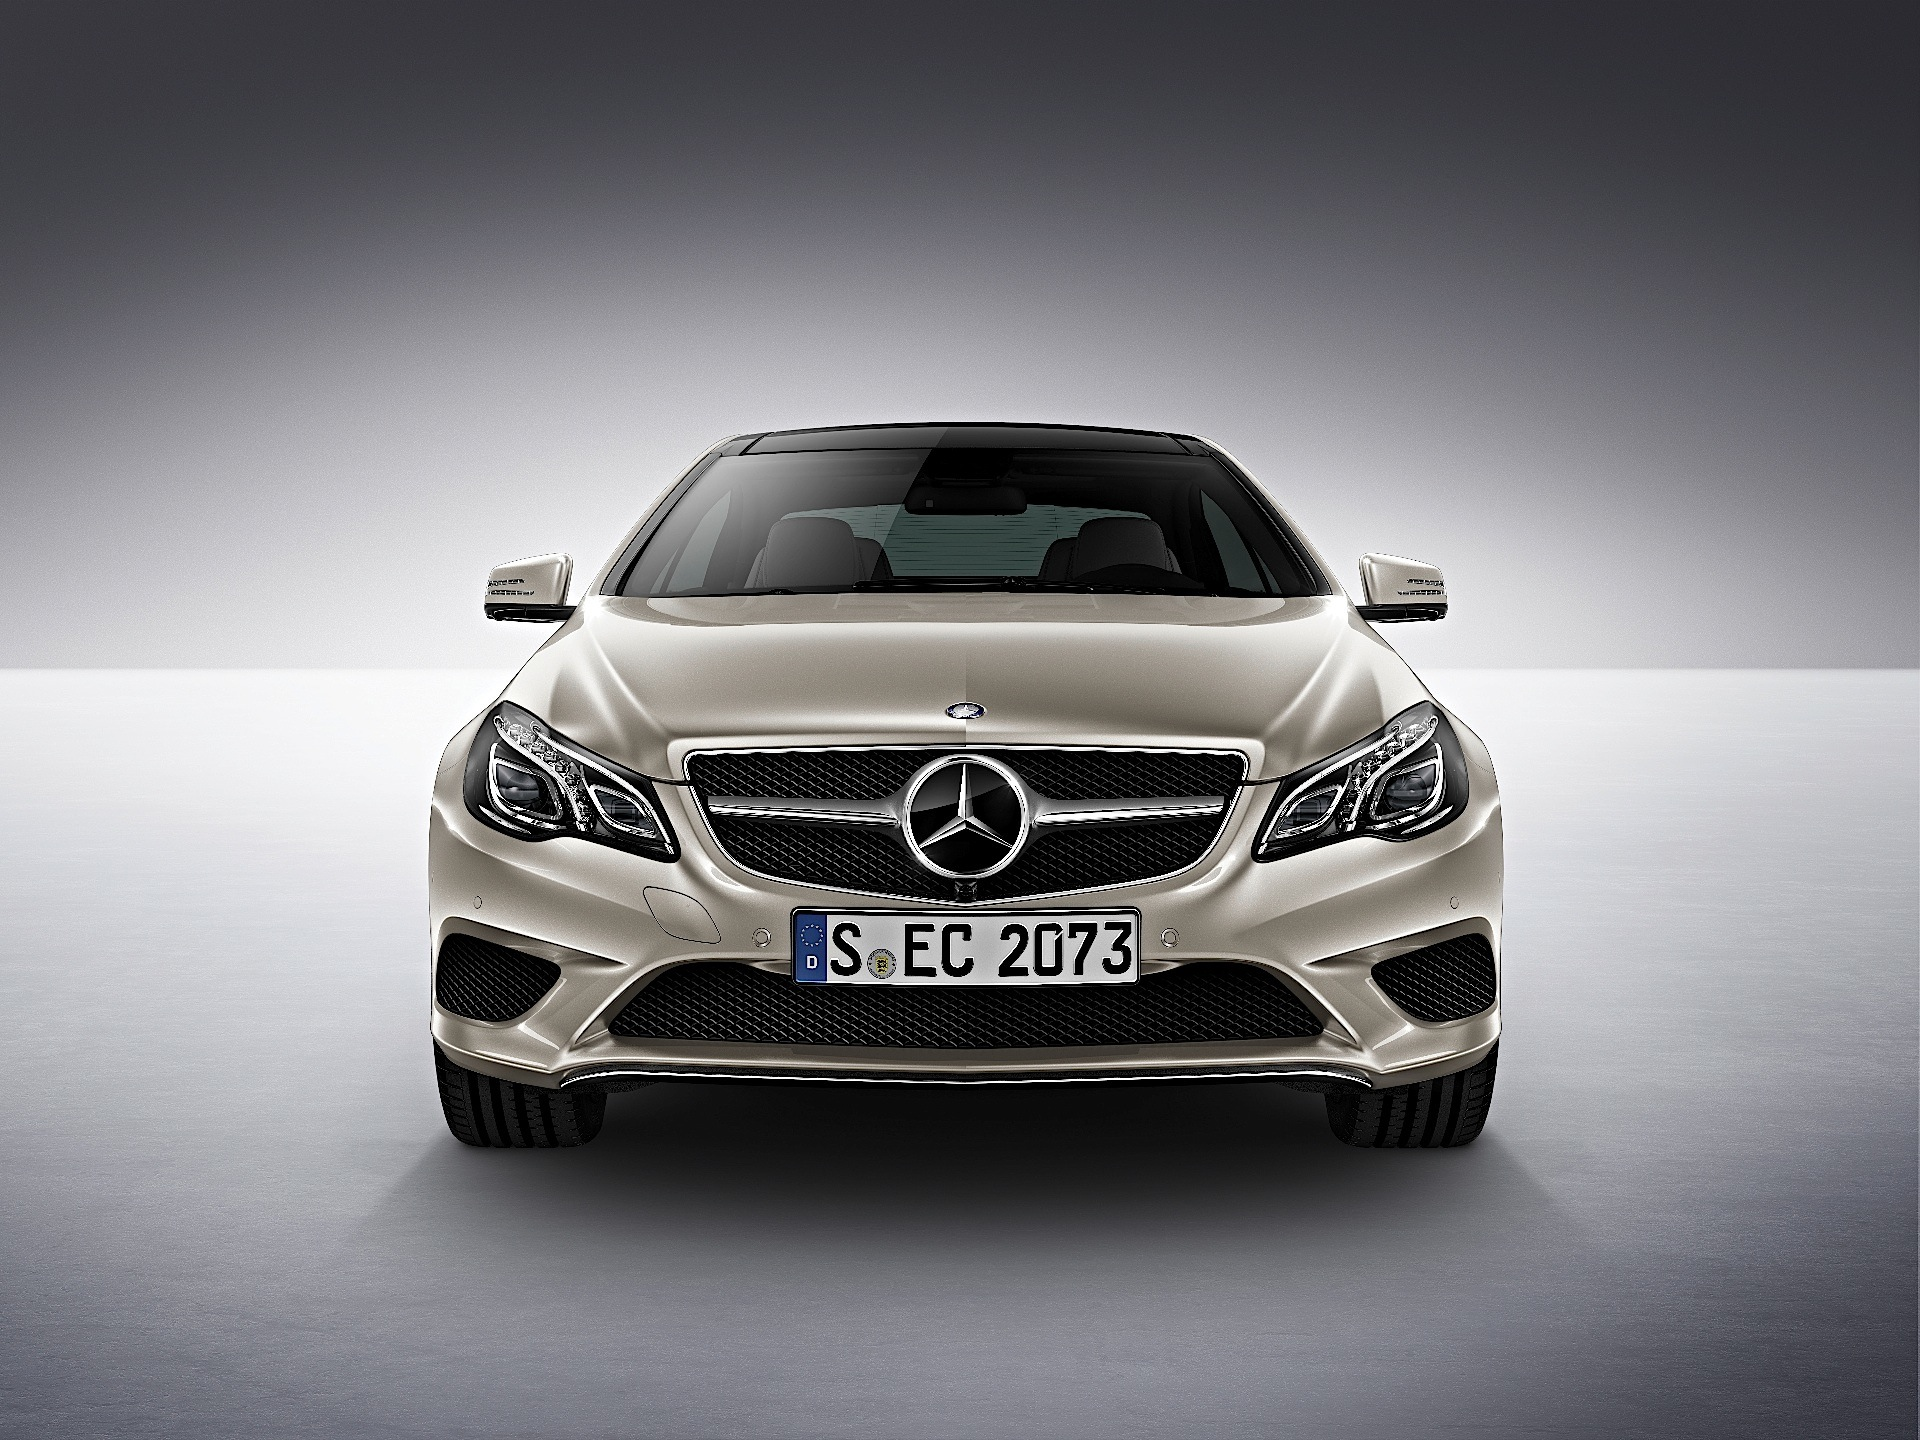 mercedes benz e klasse coupe c207 2013 2014 2015 2016 2017 autoevolution. Black Bedroom Furniture Sets. Home Design Ideas